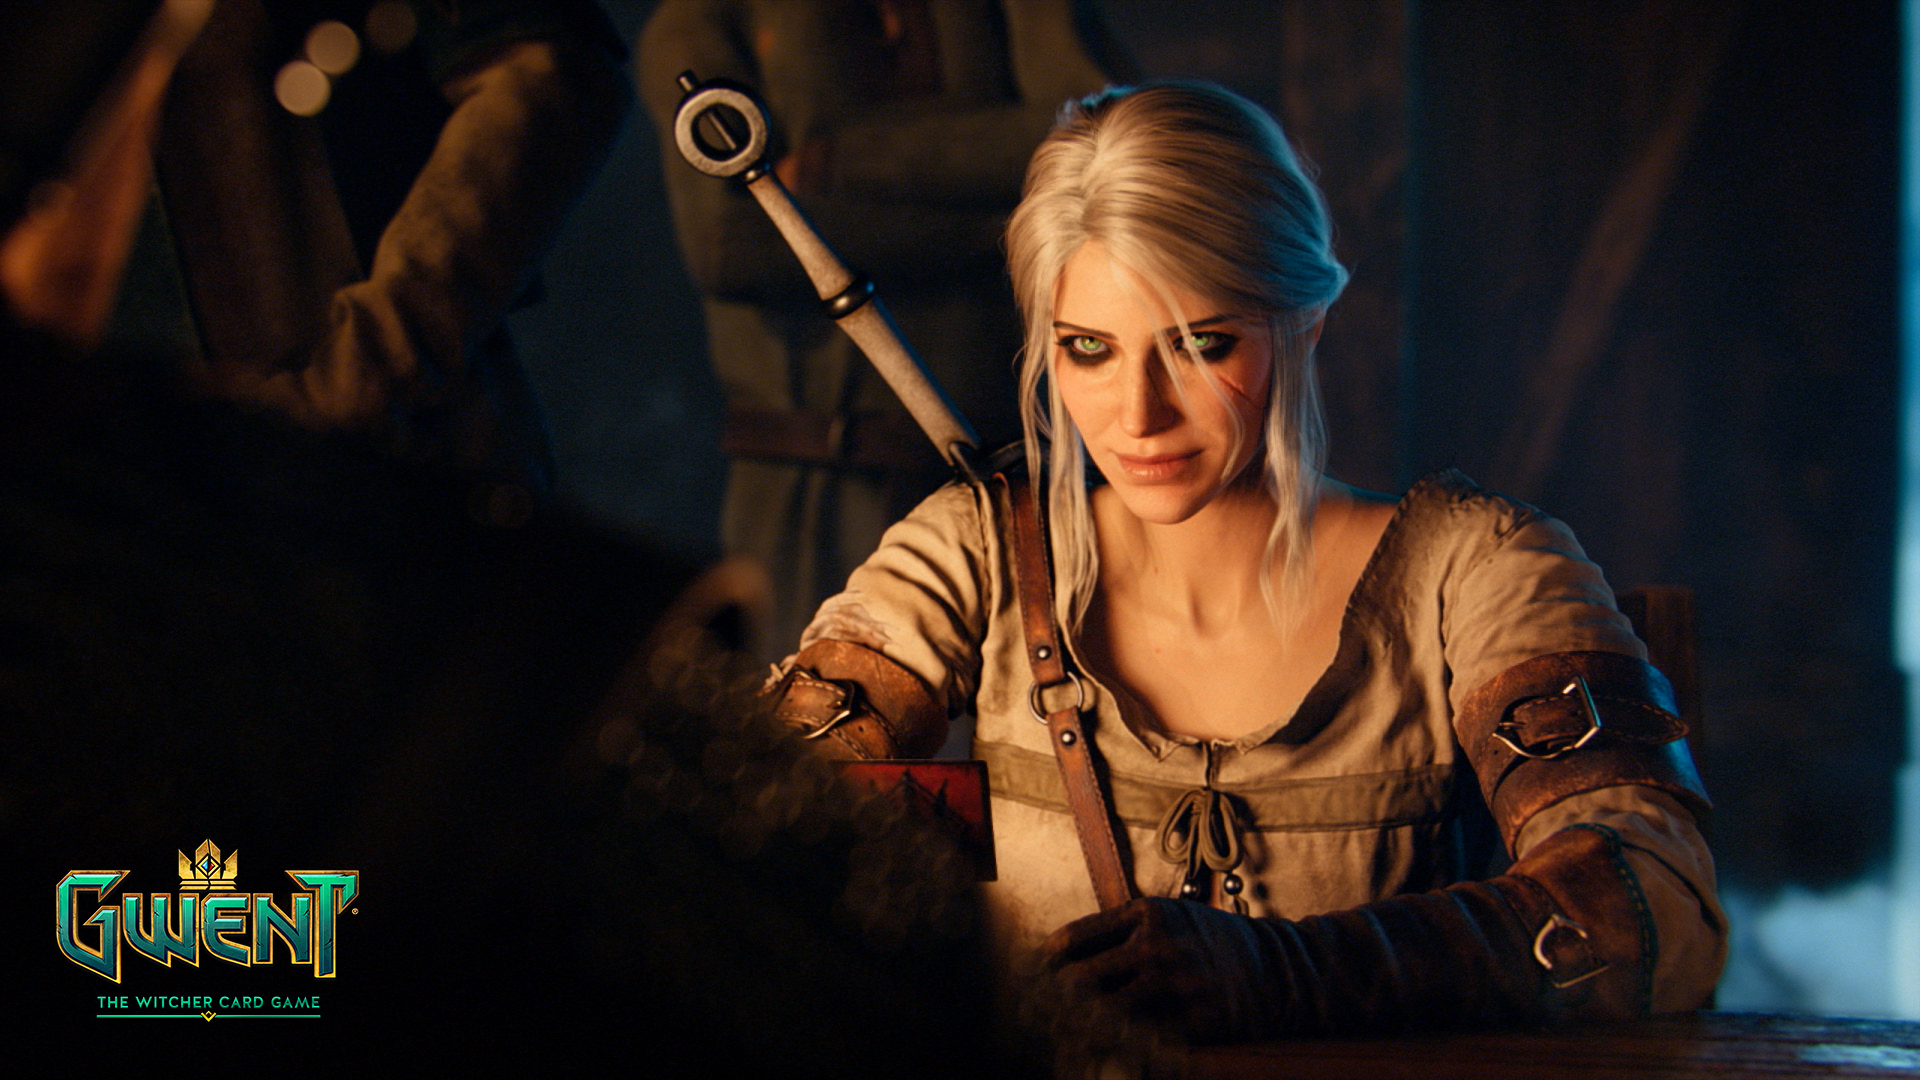 Set Apart Girl Wallpaper Media Gwent The Witcher Card Game